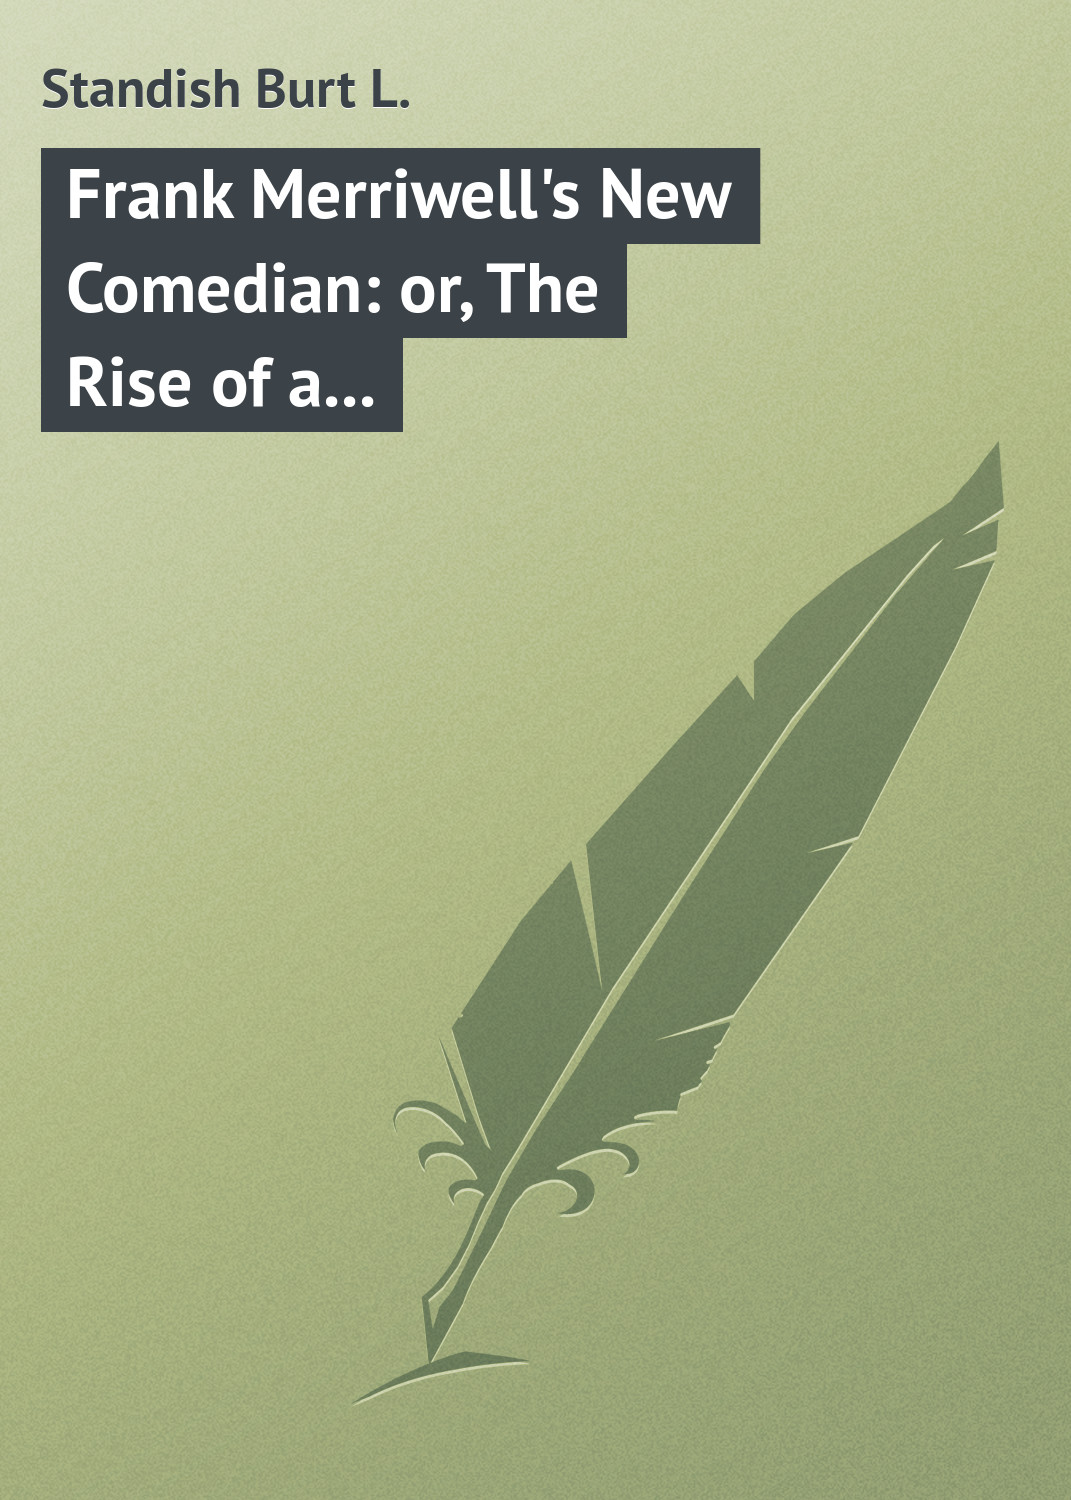 Standish Burt L. Frank Merriwell's New Comedian: or, The Rise of a Star standish of standish a story of the pilgrims